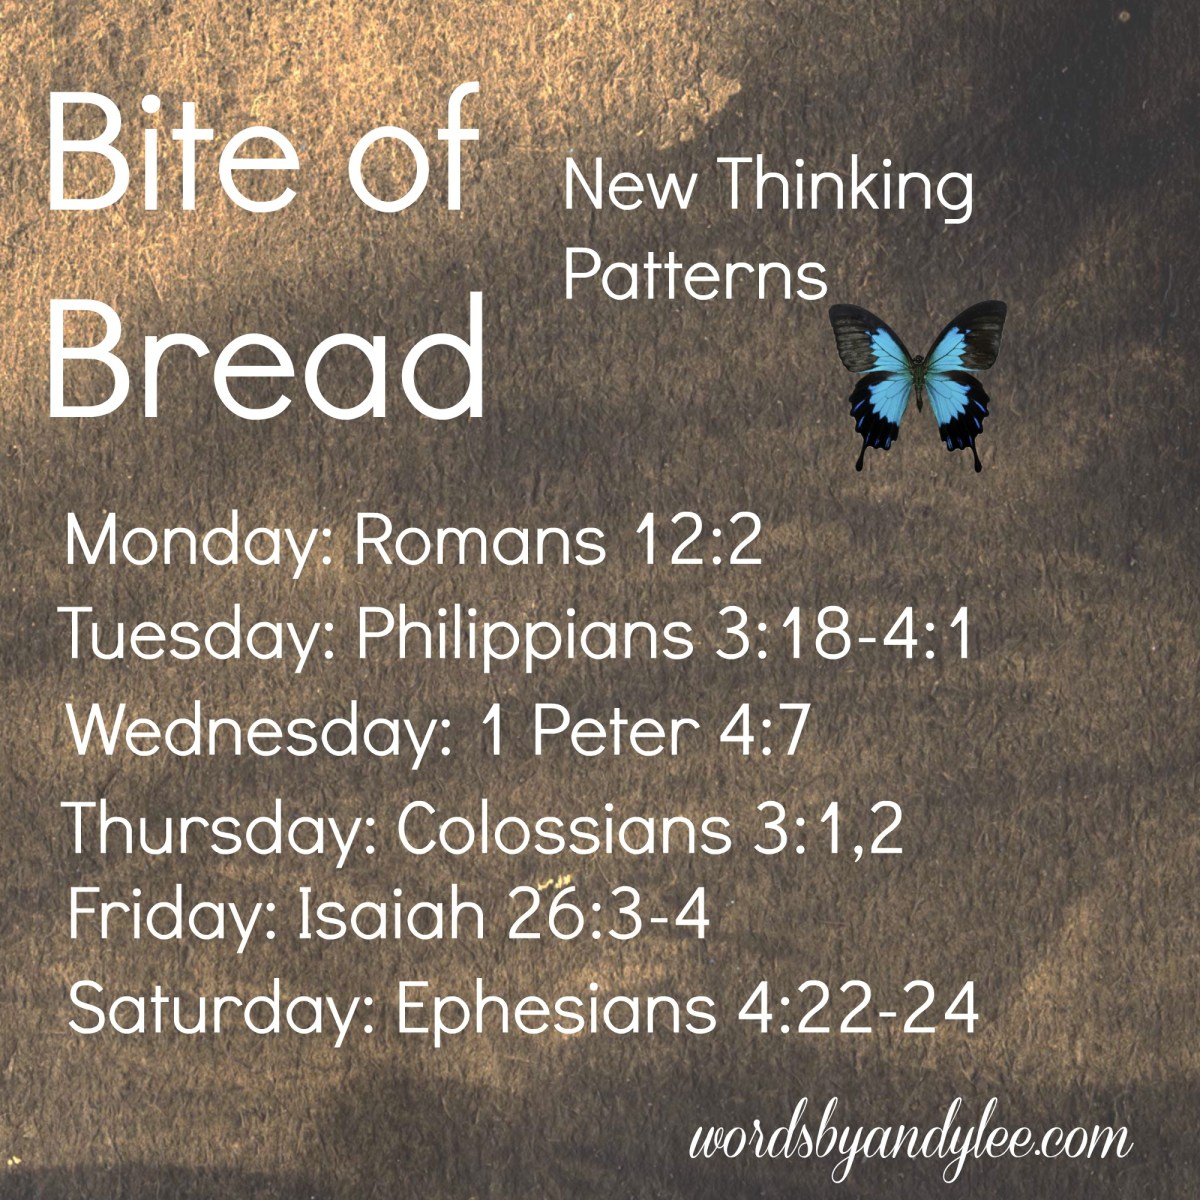 Bite of Bread: New Thinking Patterns